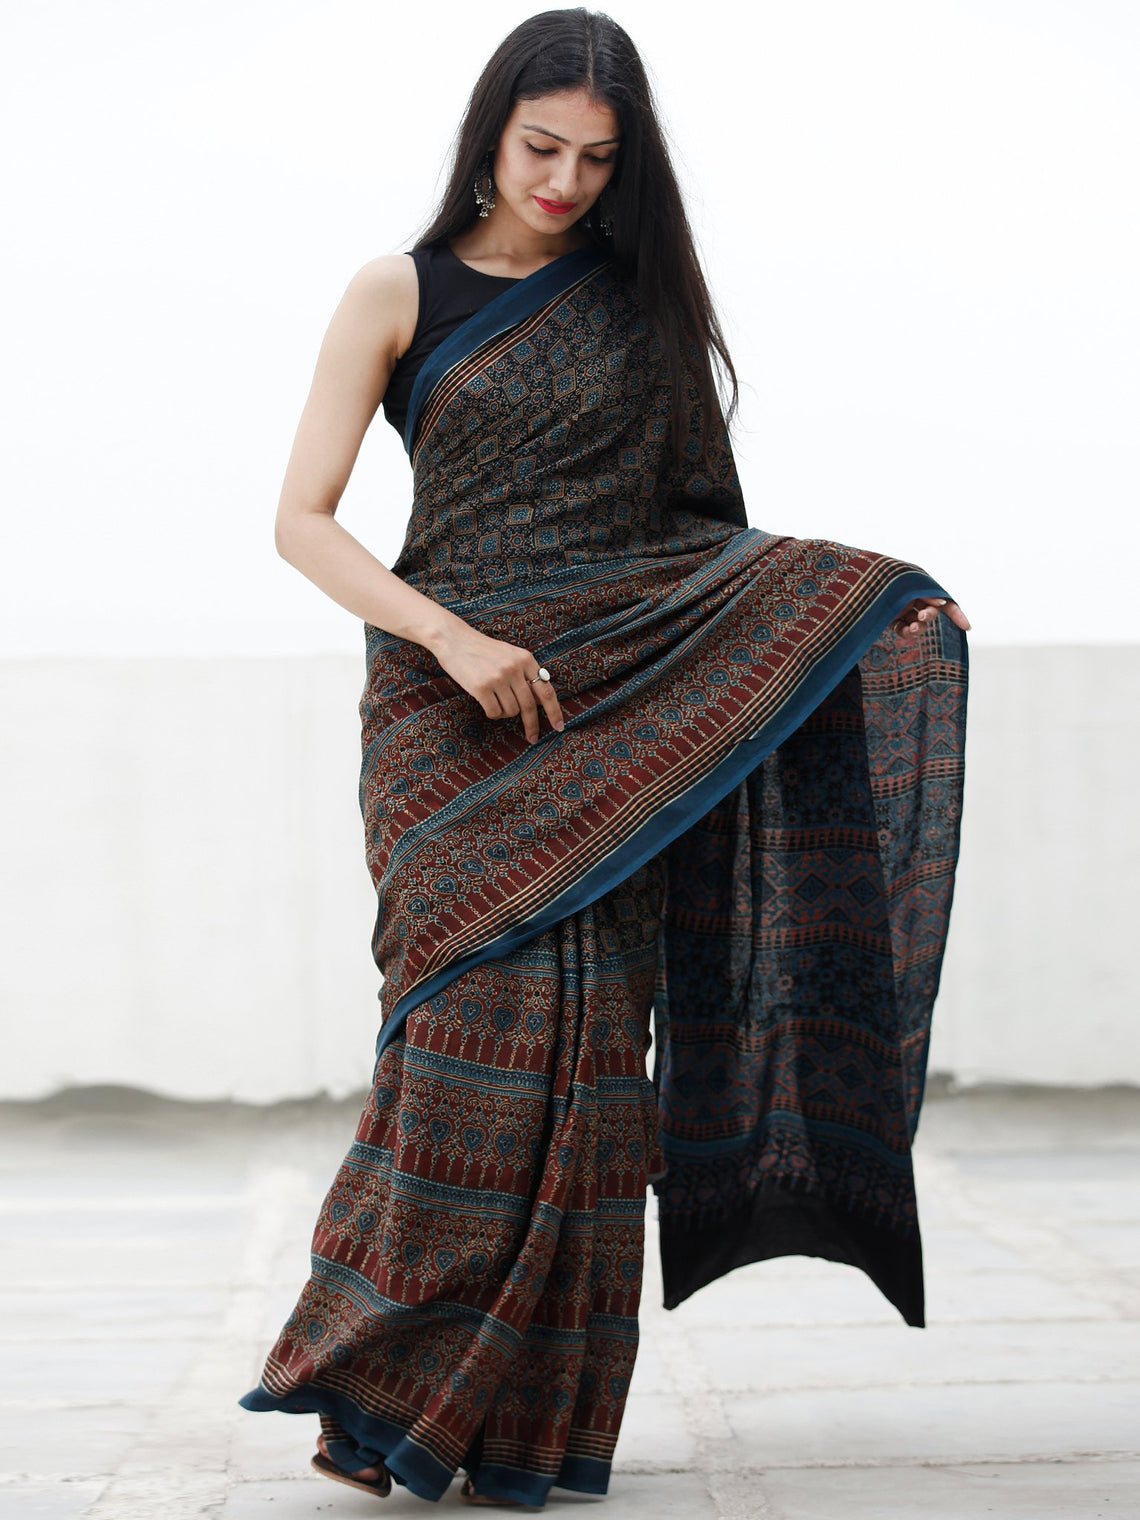 Indigo Black Rust Beige Ajrakh Hand Block Printed Modal Silk Saree in Natural Colors - S031703710